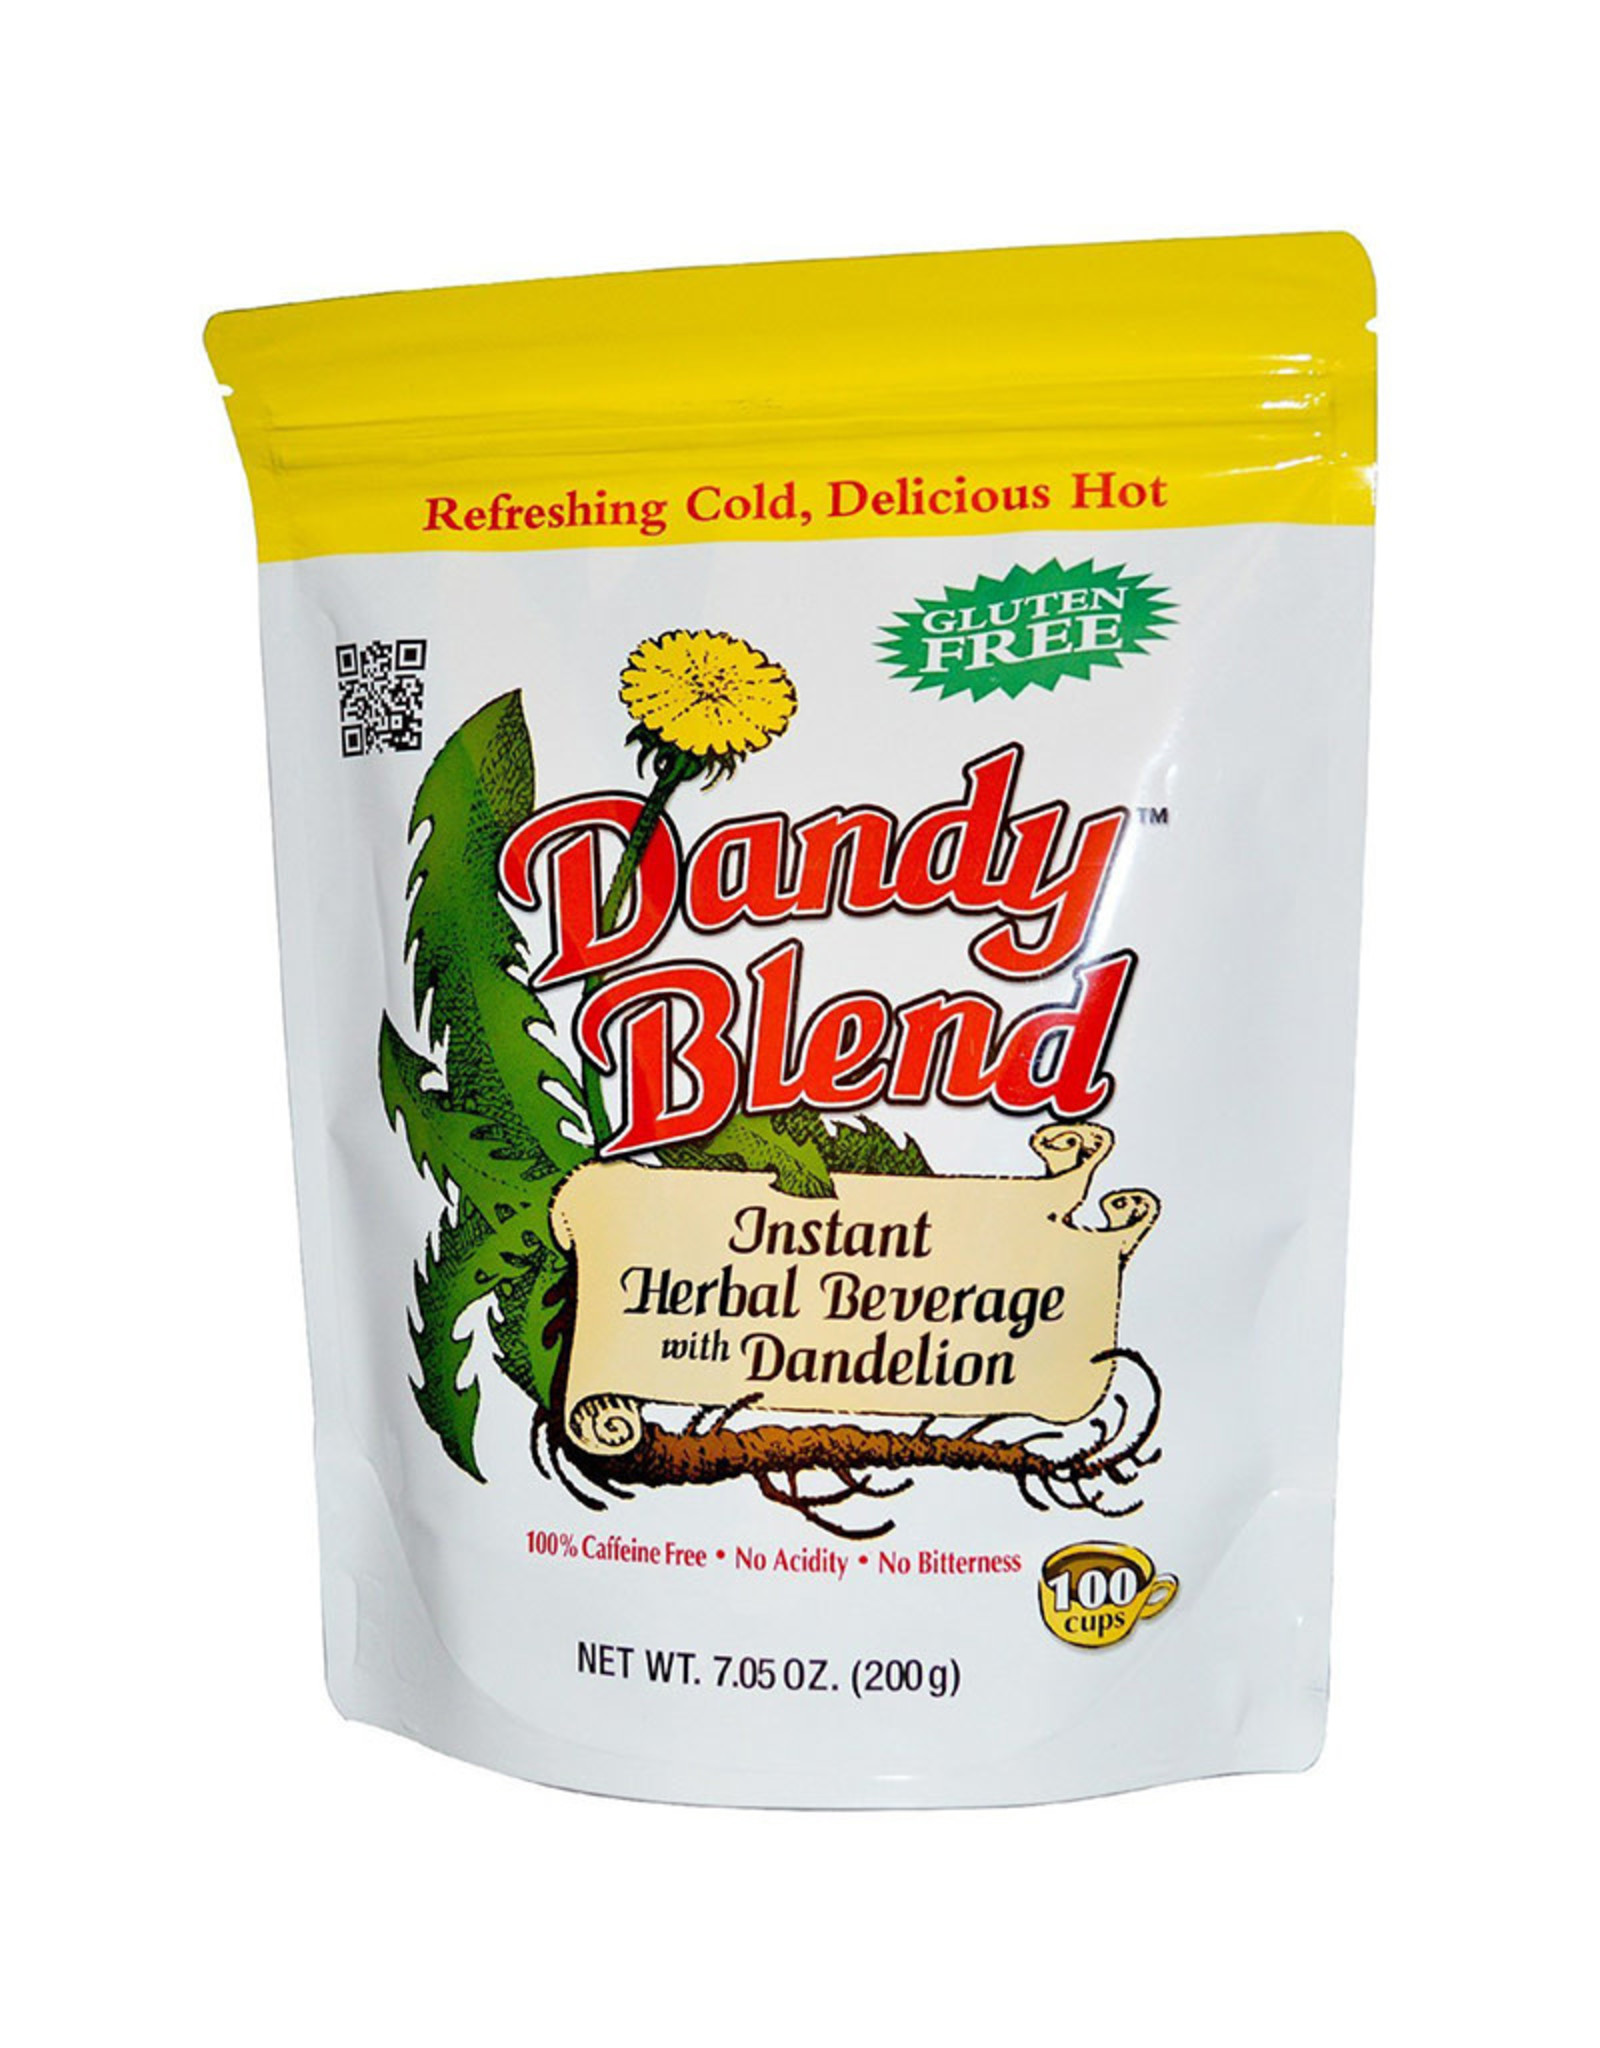 Dandy Blend Dandy Blend - Instant Herbal Beverage (400g)